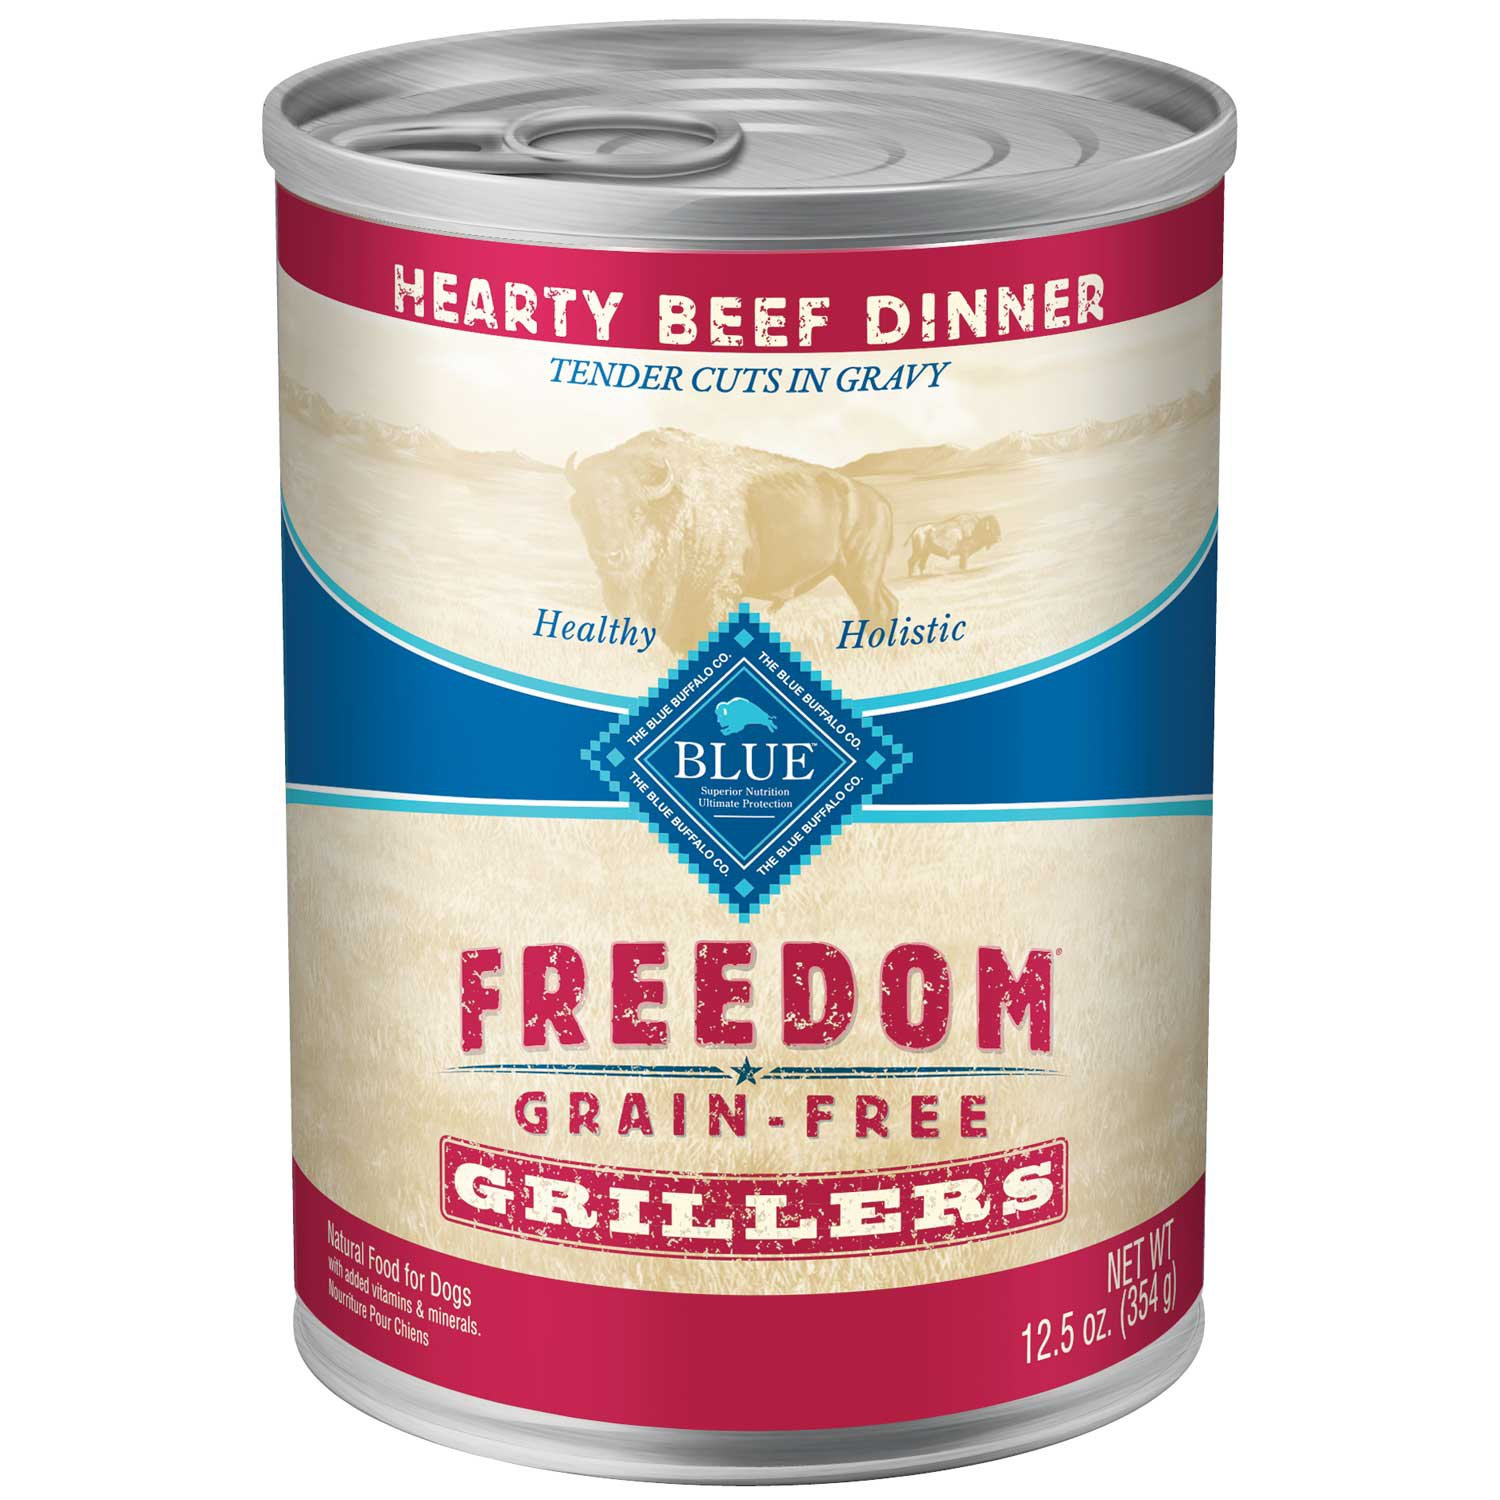 Grain Free Fish Canned Dog Food